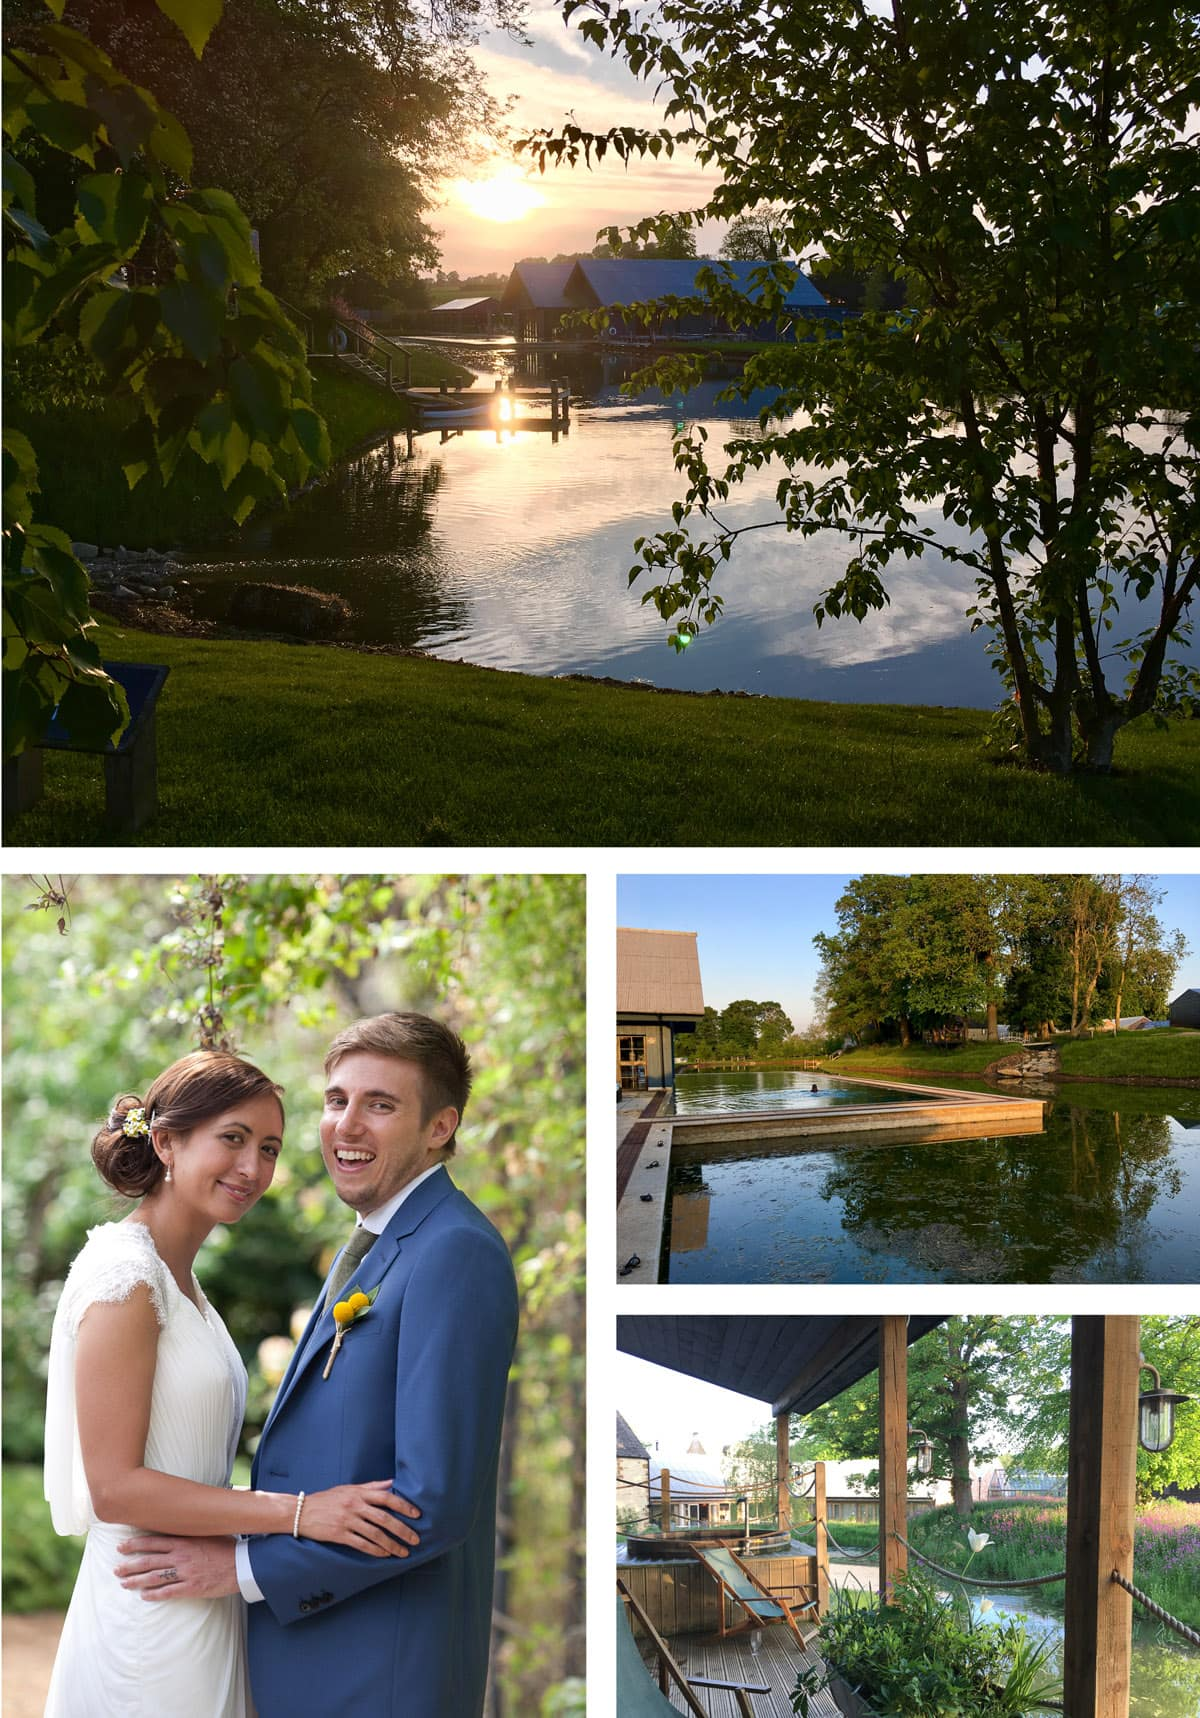 Collage of images taken at Soho Farmhouse, unique Oxfordshire venue